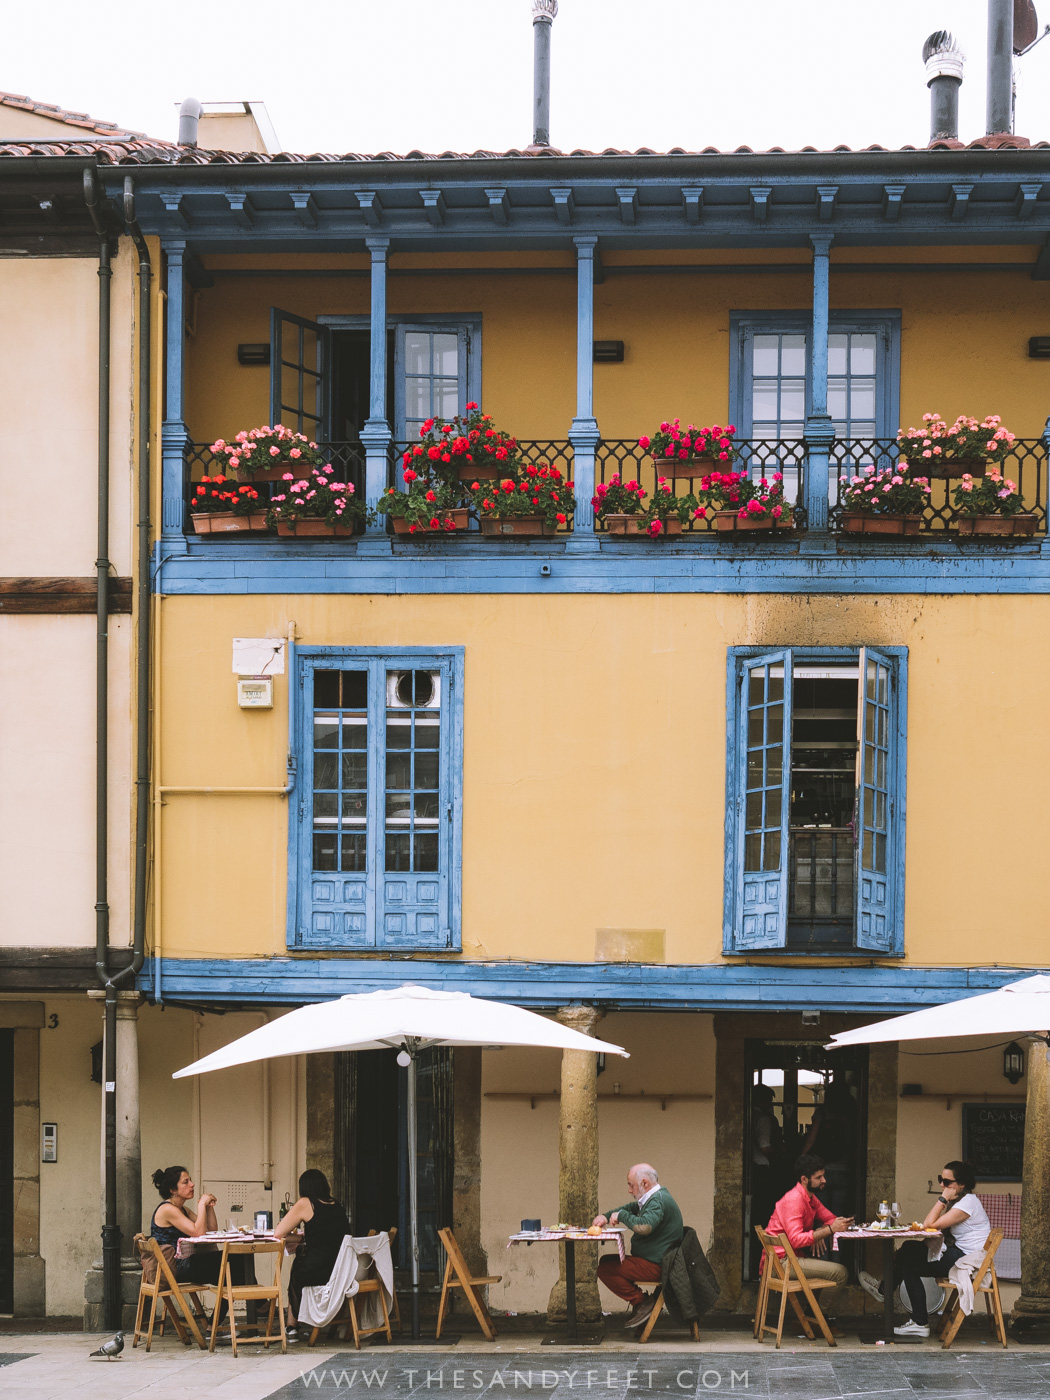 Oviedo | A Taste Of Northern Spain: 11 Incredible Places To Visit In Asturias | The Best Things To Do In Asturias, Spain